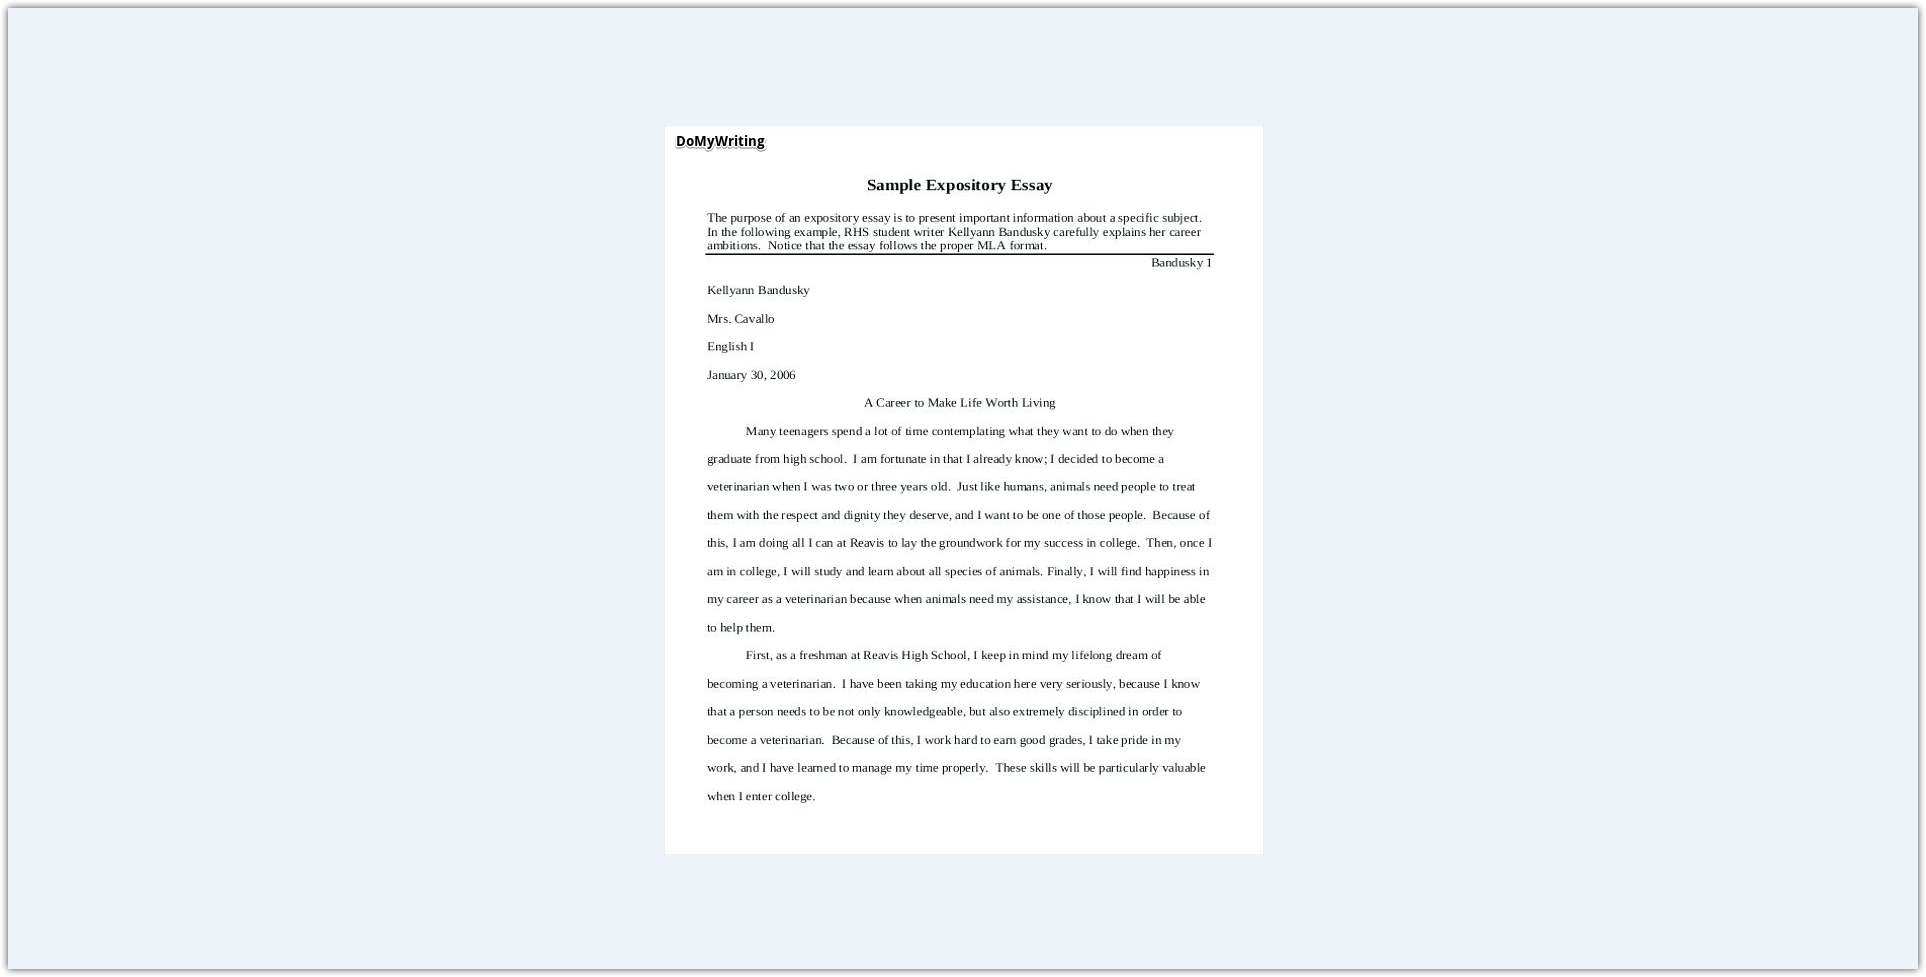 019 Expository Essay Samples Impressive Theme Examples High School For 7th Grade Full